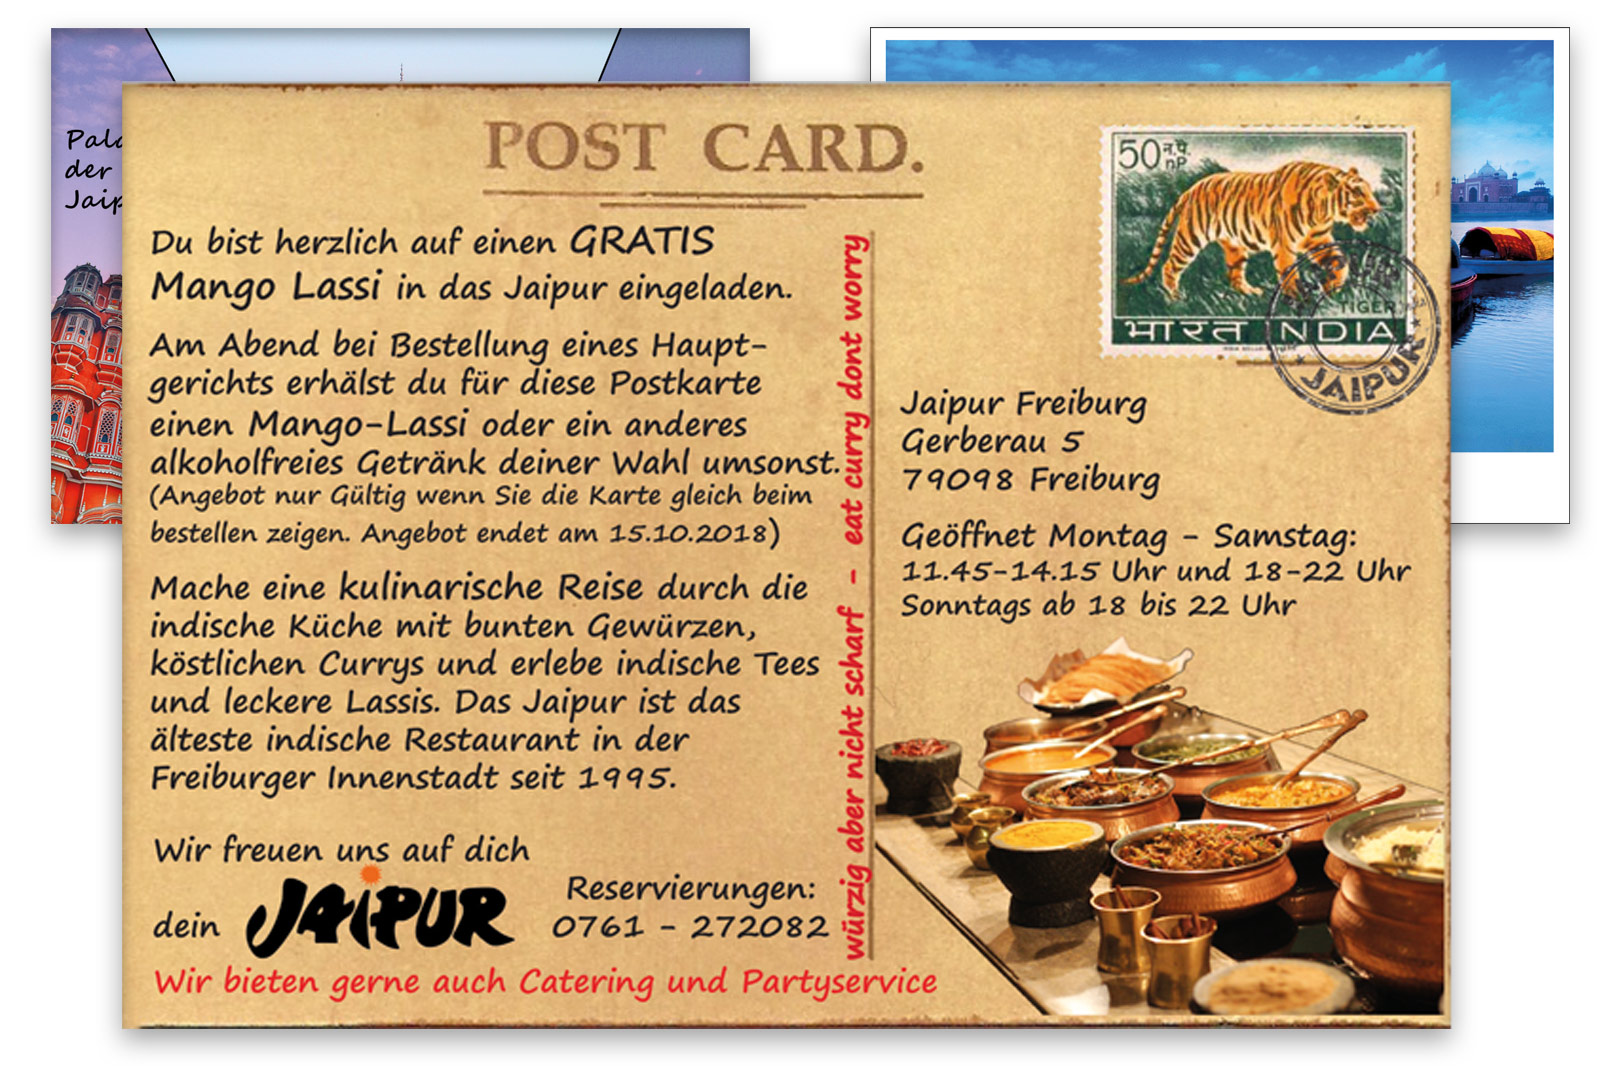 jaipur-postcard-preview-2.jpg